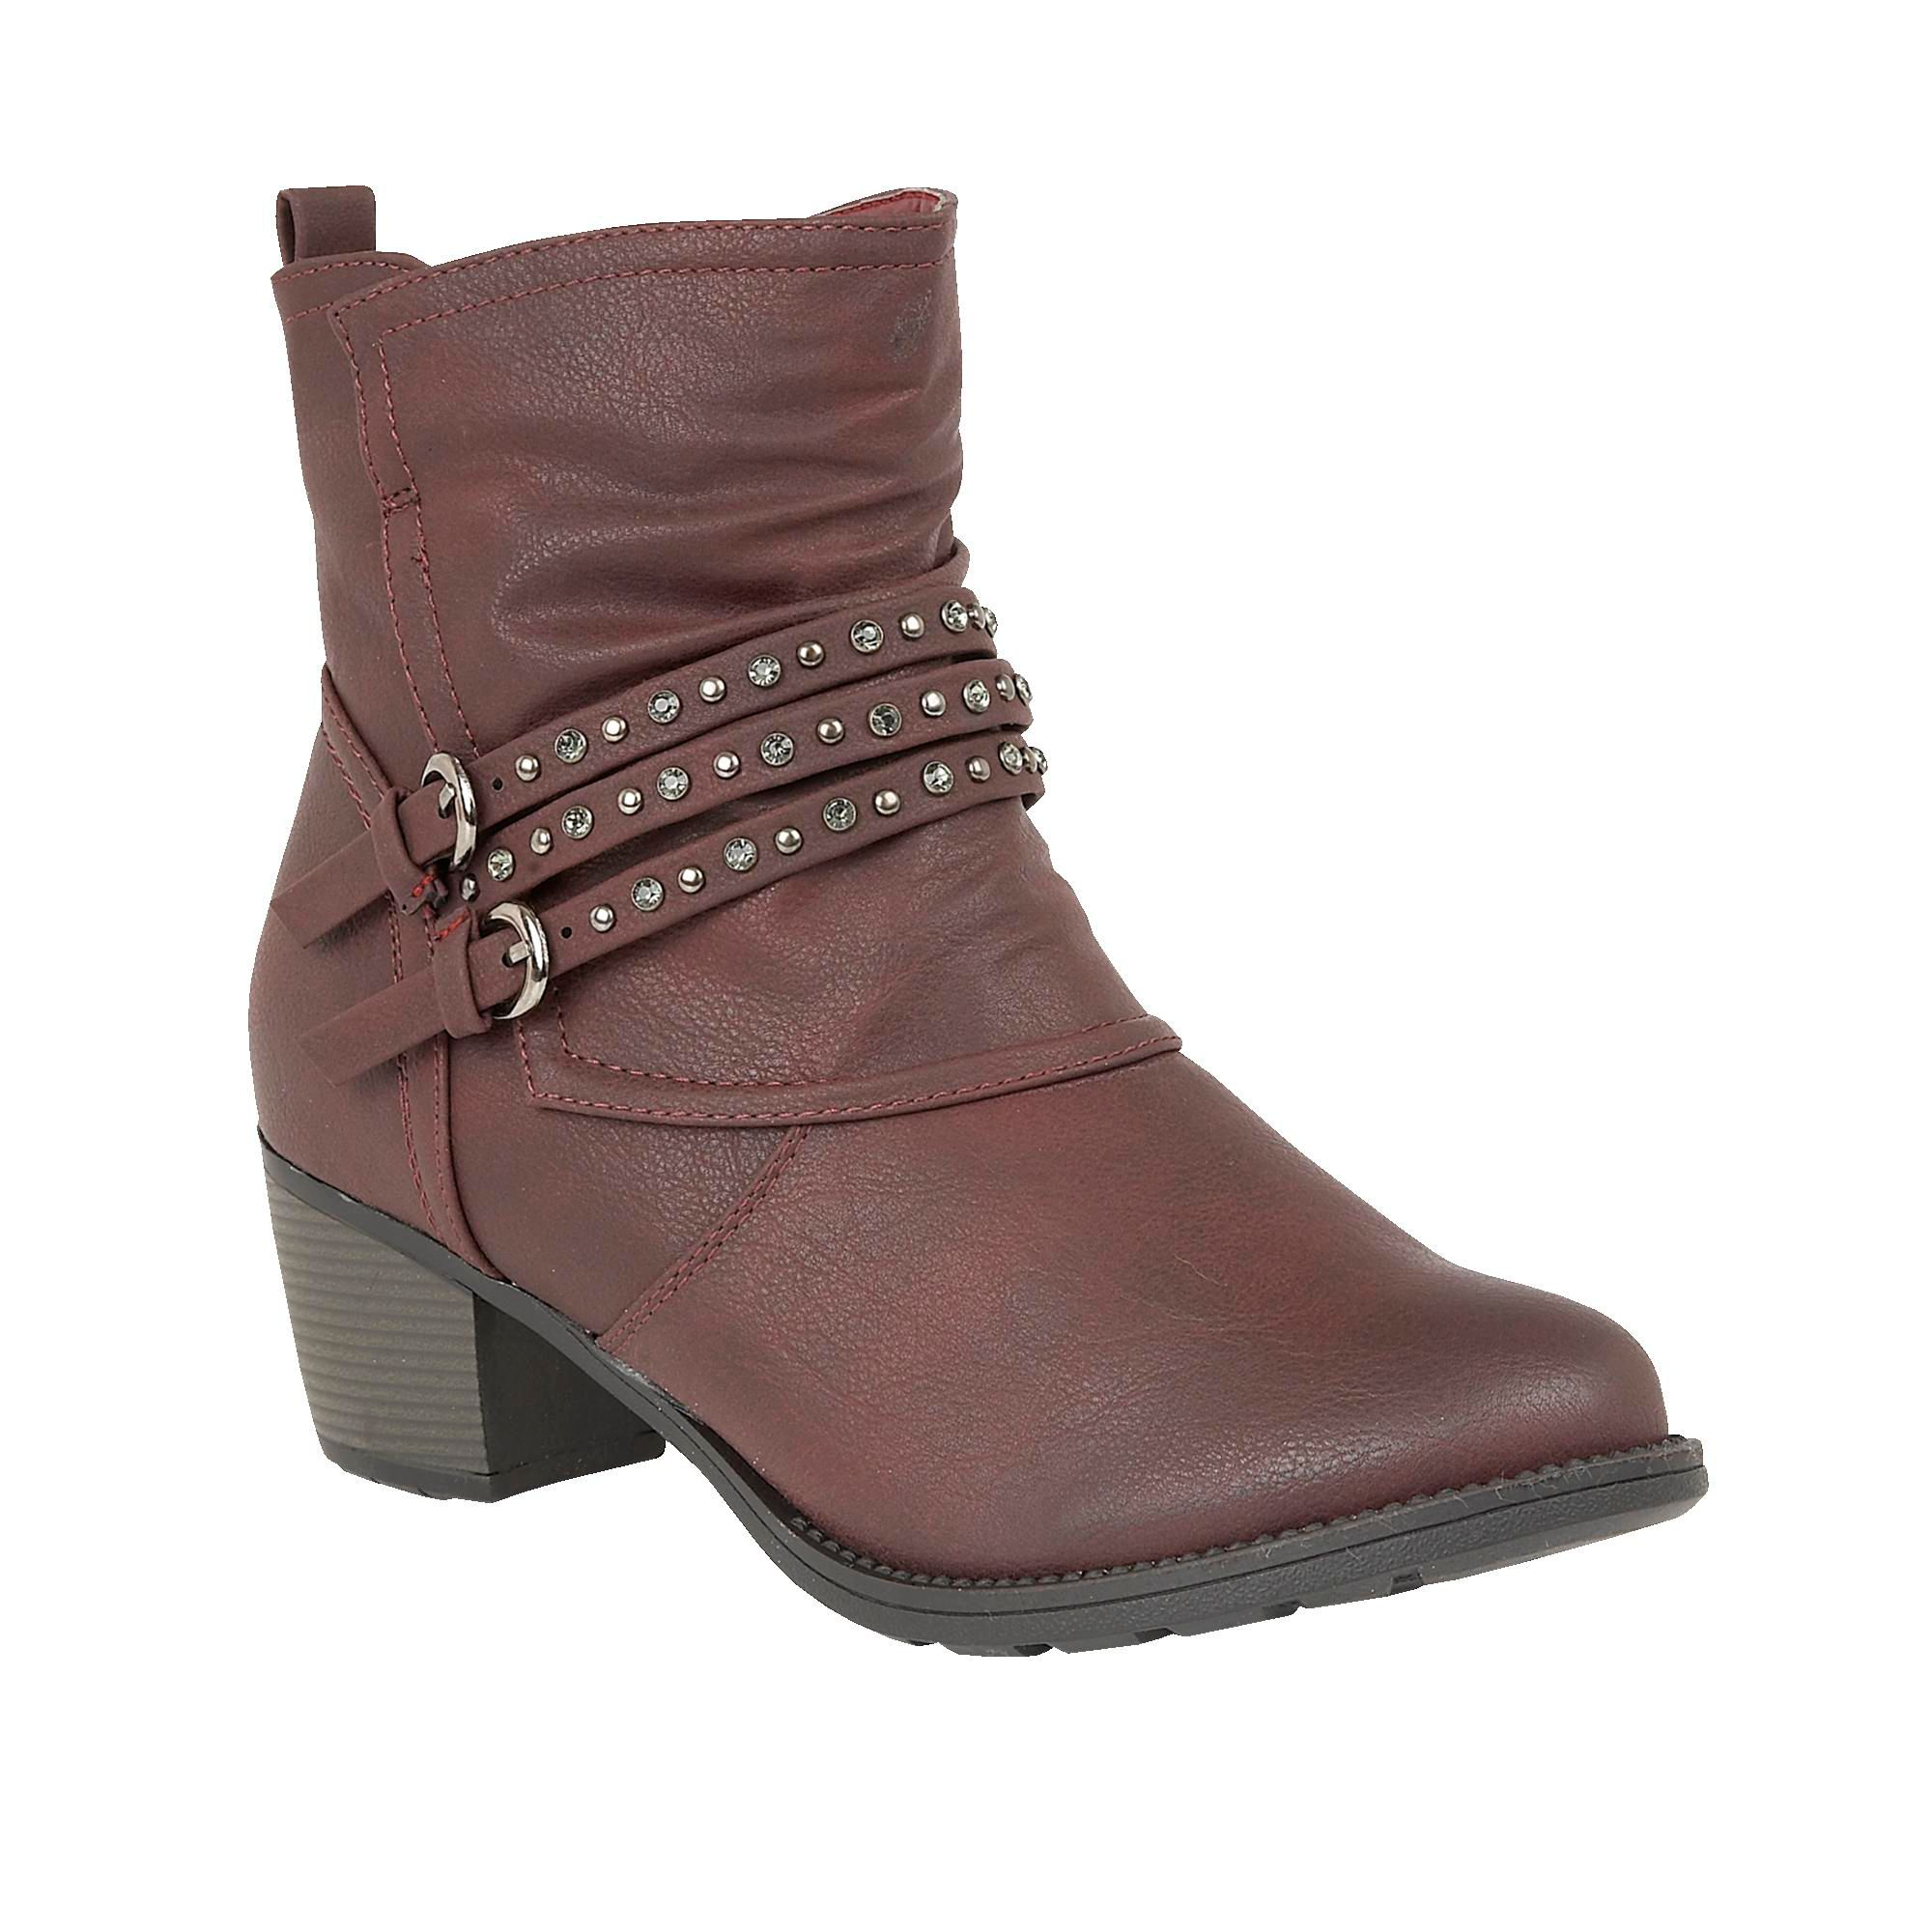 Lotus Forset animal print ankle boots Bordeaux